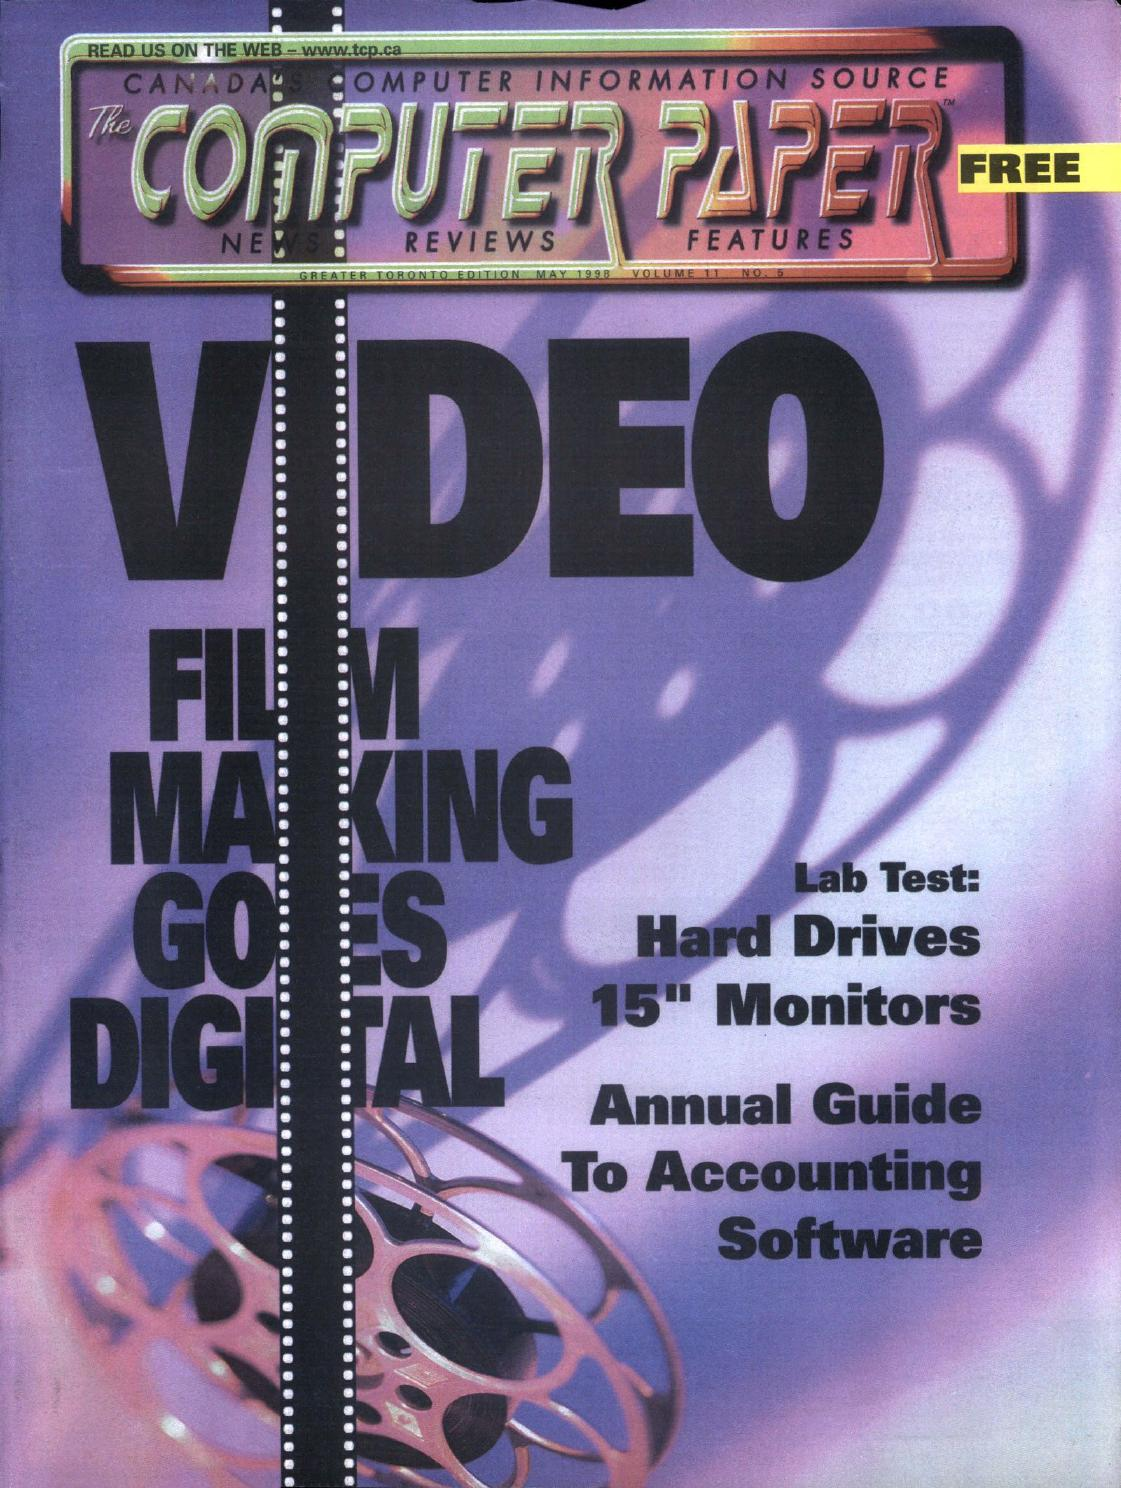 1998 05 The Computer Paper - Ontario Edition by The Computer Paper - issuu